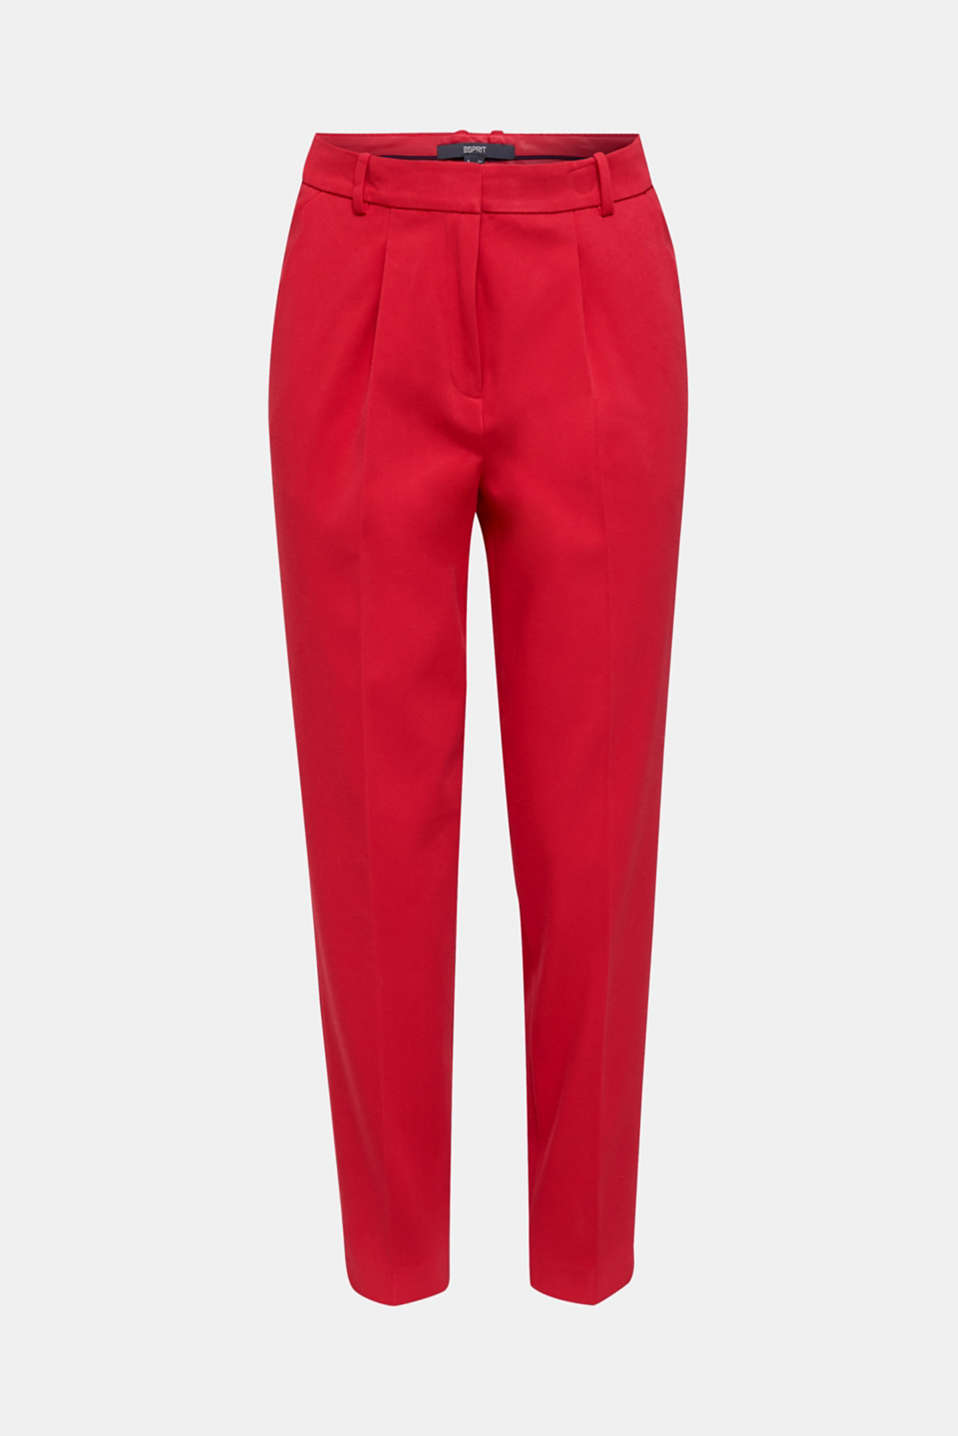 MODERN Mix + Match trousers with a high-rise waist, RED, detail image number 7